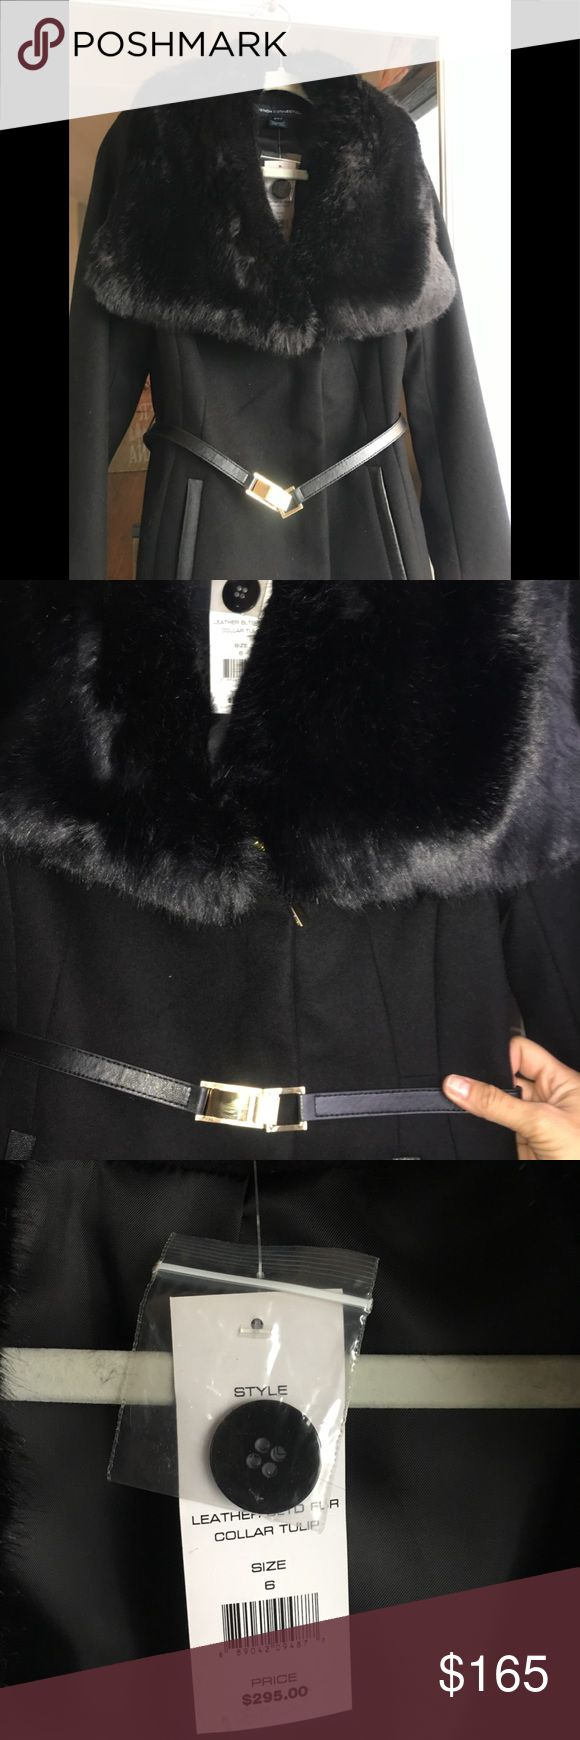 🔥NWT French Connection Coat w/ Faux Fur Collar NWT French Connection wool winter coat with faux fur collar in black. Jacket has never been wore, still has tags. The pockets are lined with leather piping, has waist belt w gold lock. Zippers are gold on the arms and on the front. French Connection Jackets & Coats